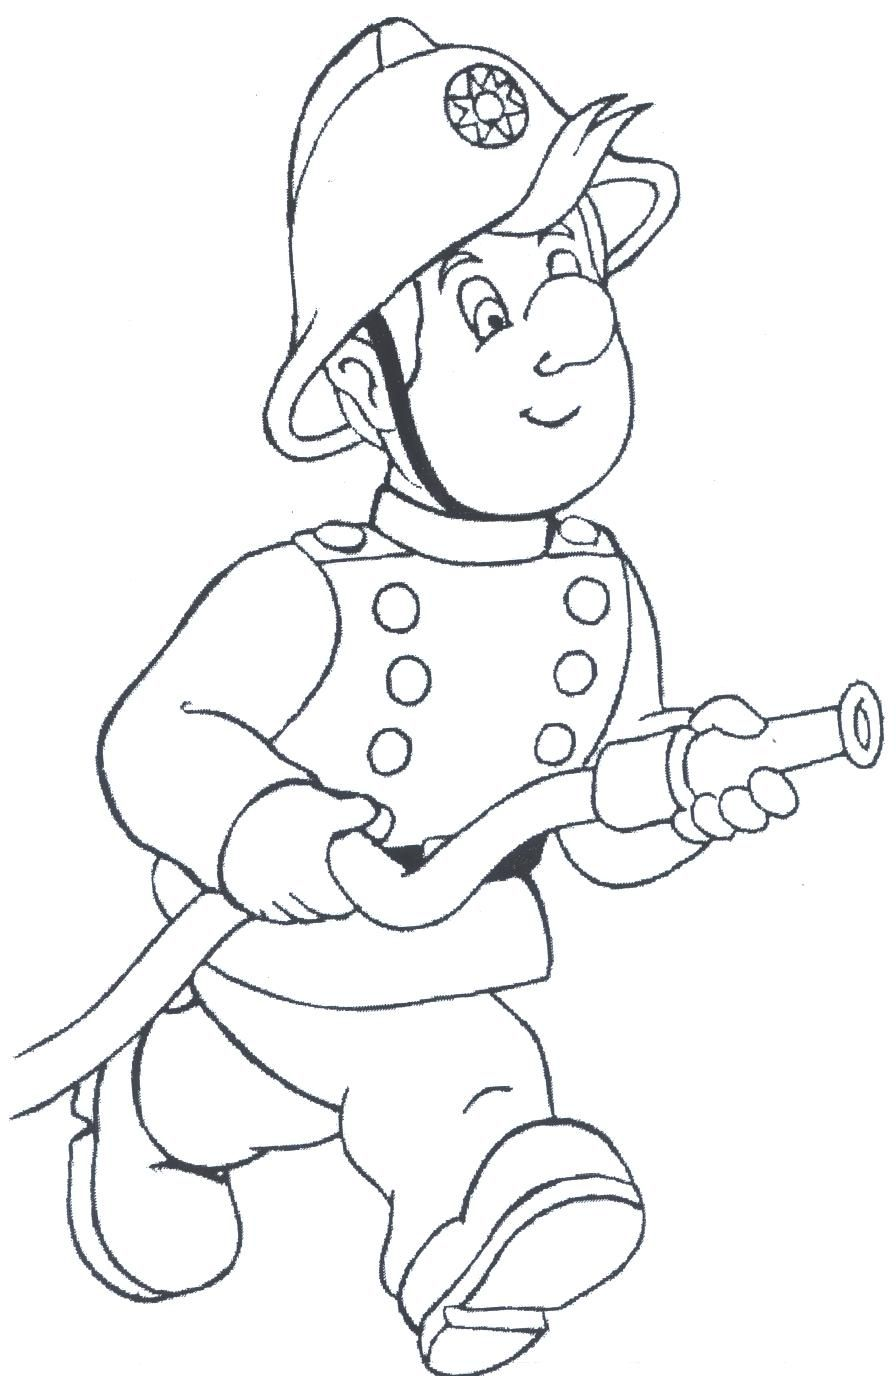 fireman coloring page # 17